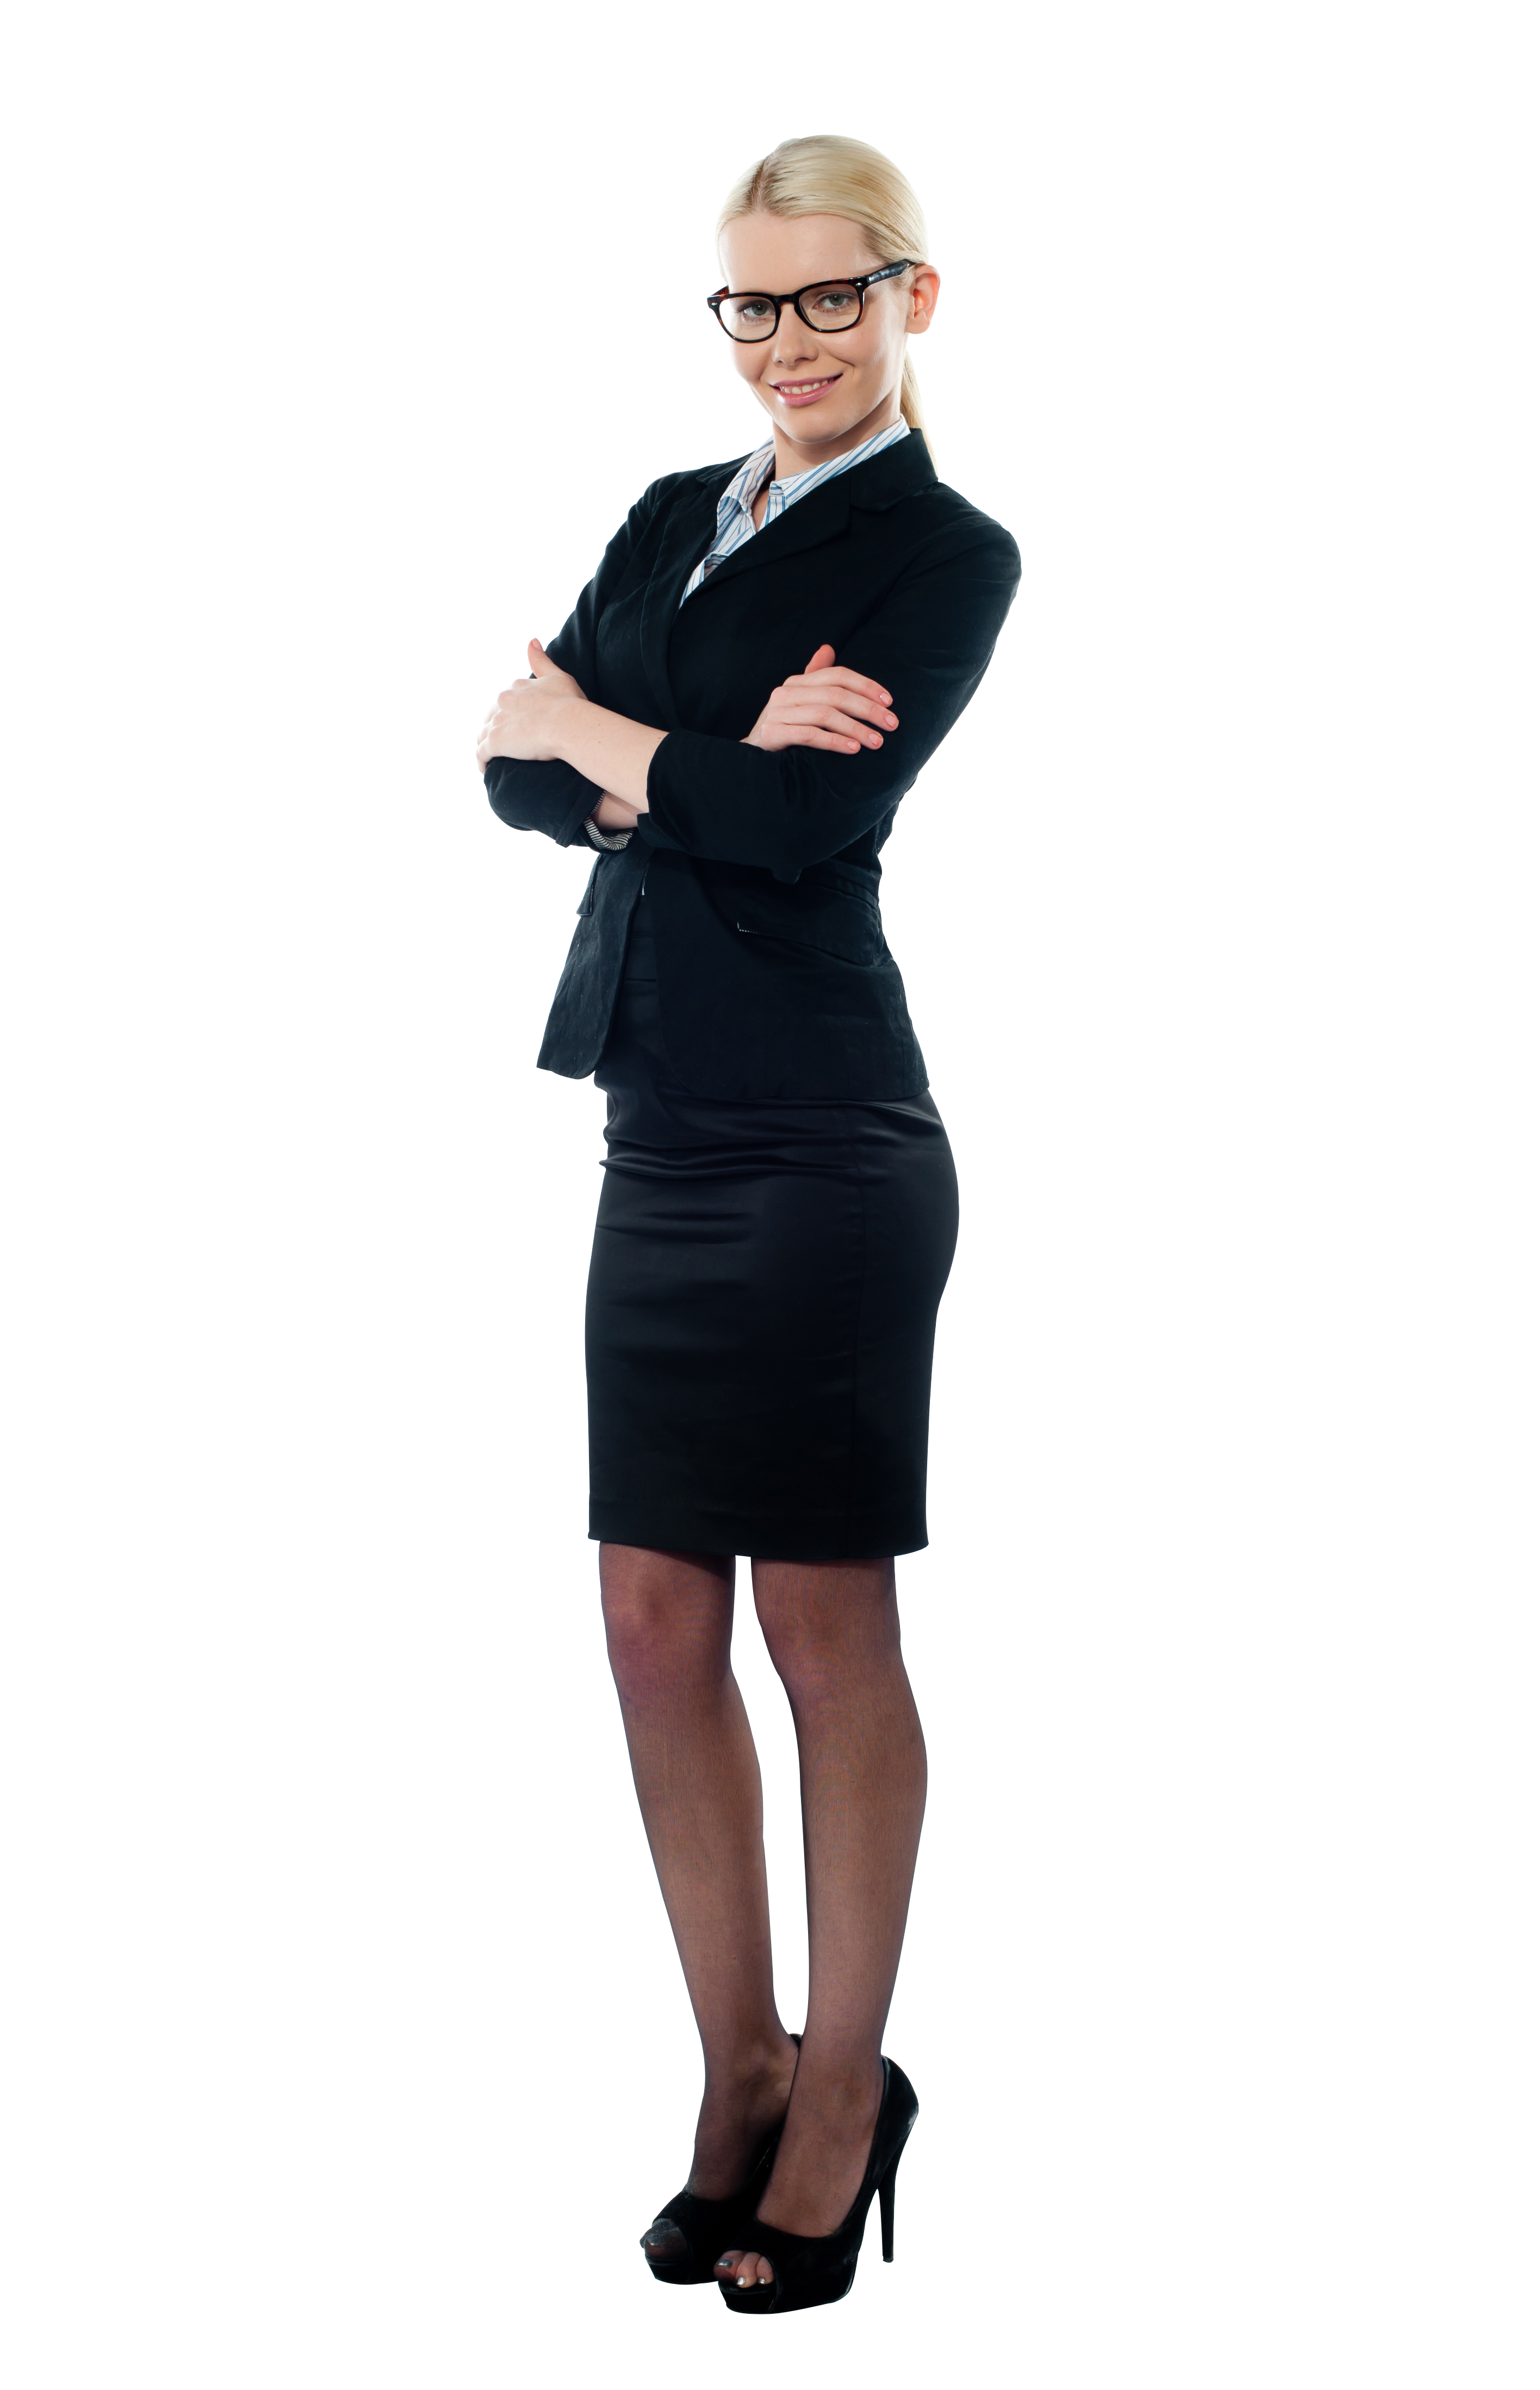 Business Women Free Commercial Use PNG Image - PNG For Business Use